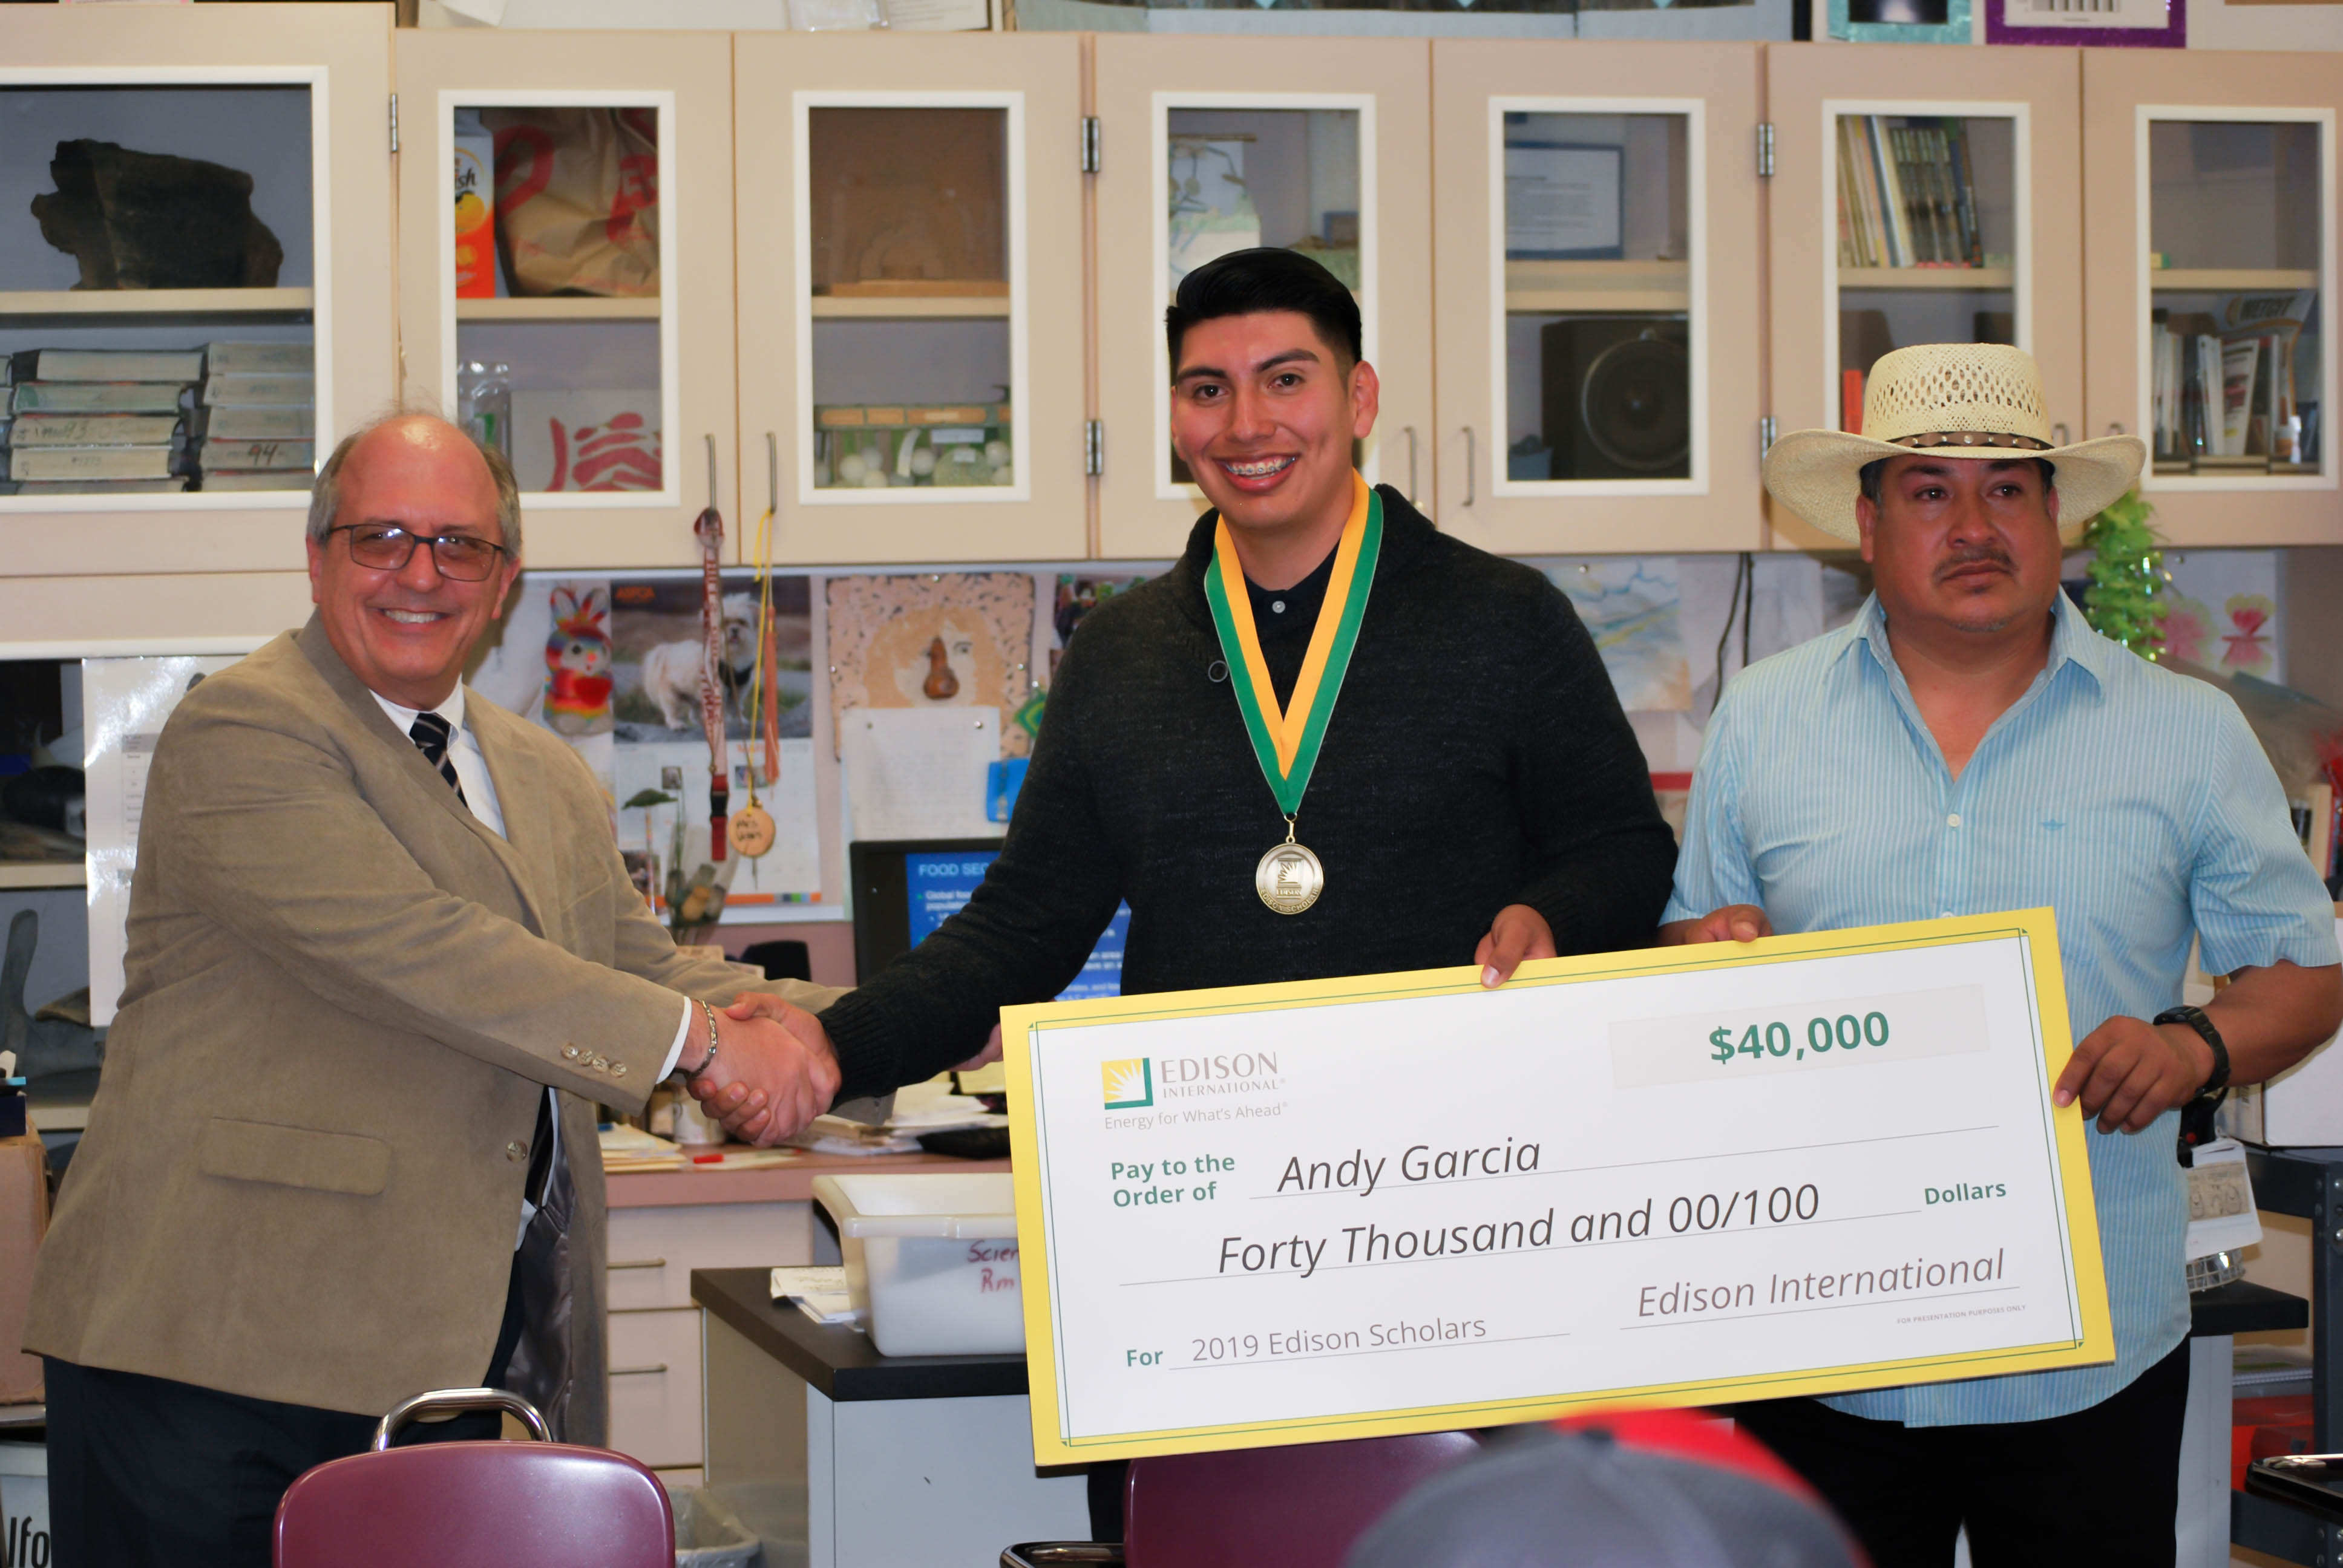 2019 Edison Scholar Andy Garcia at Granite Hills High School